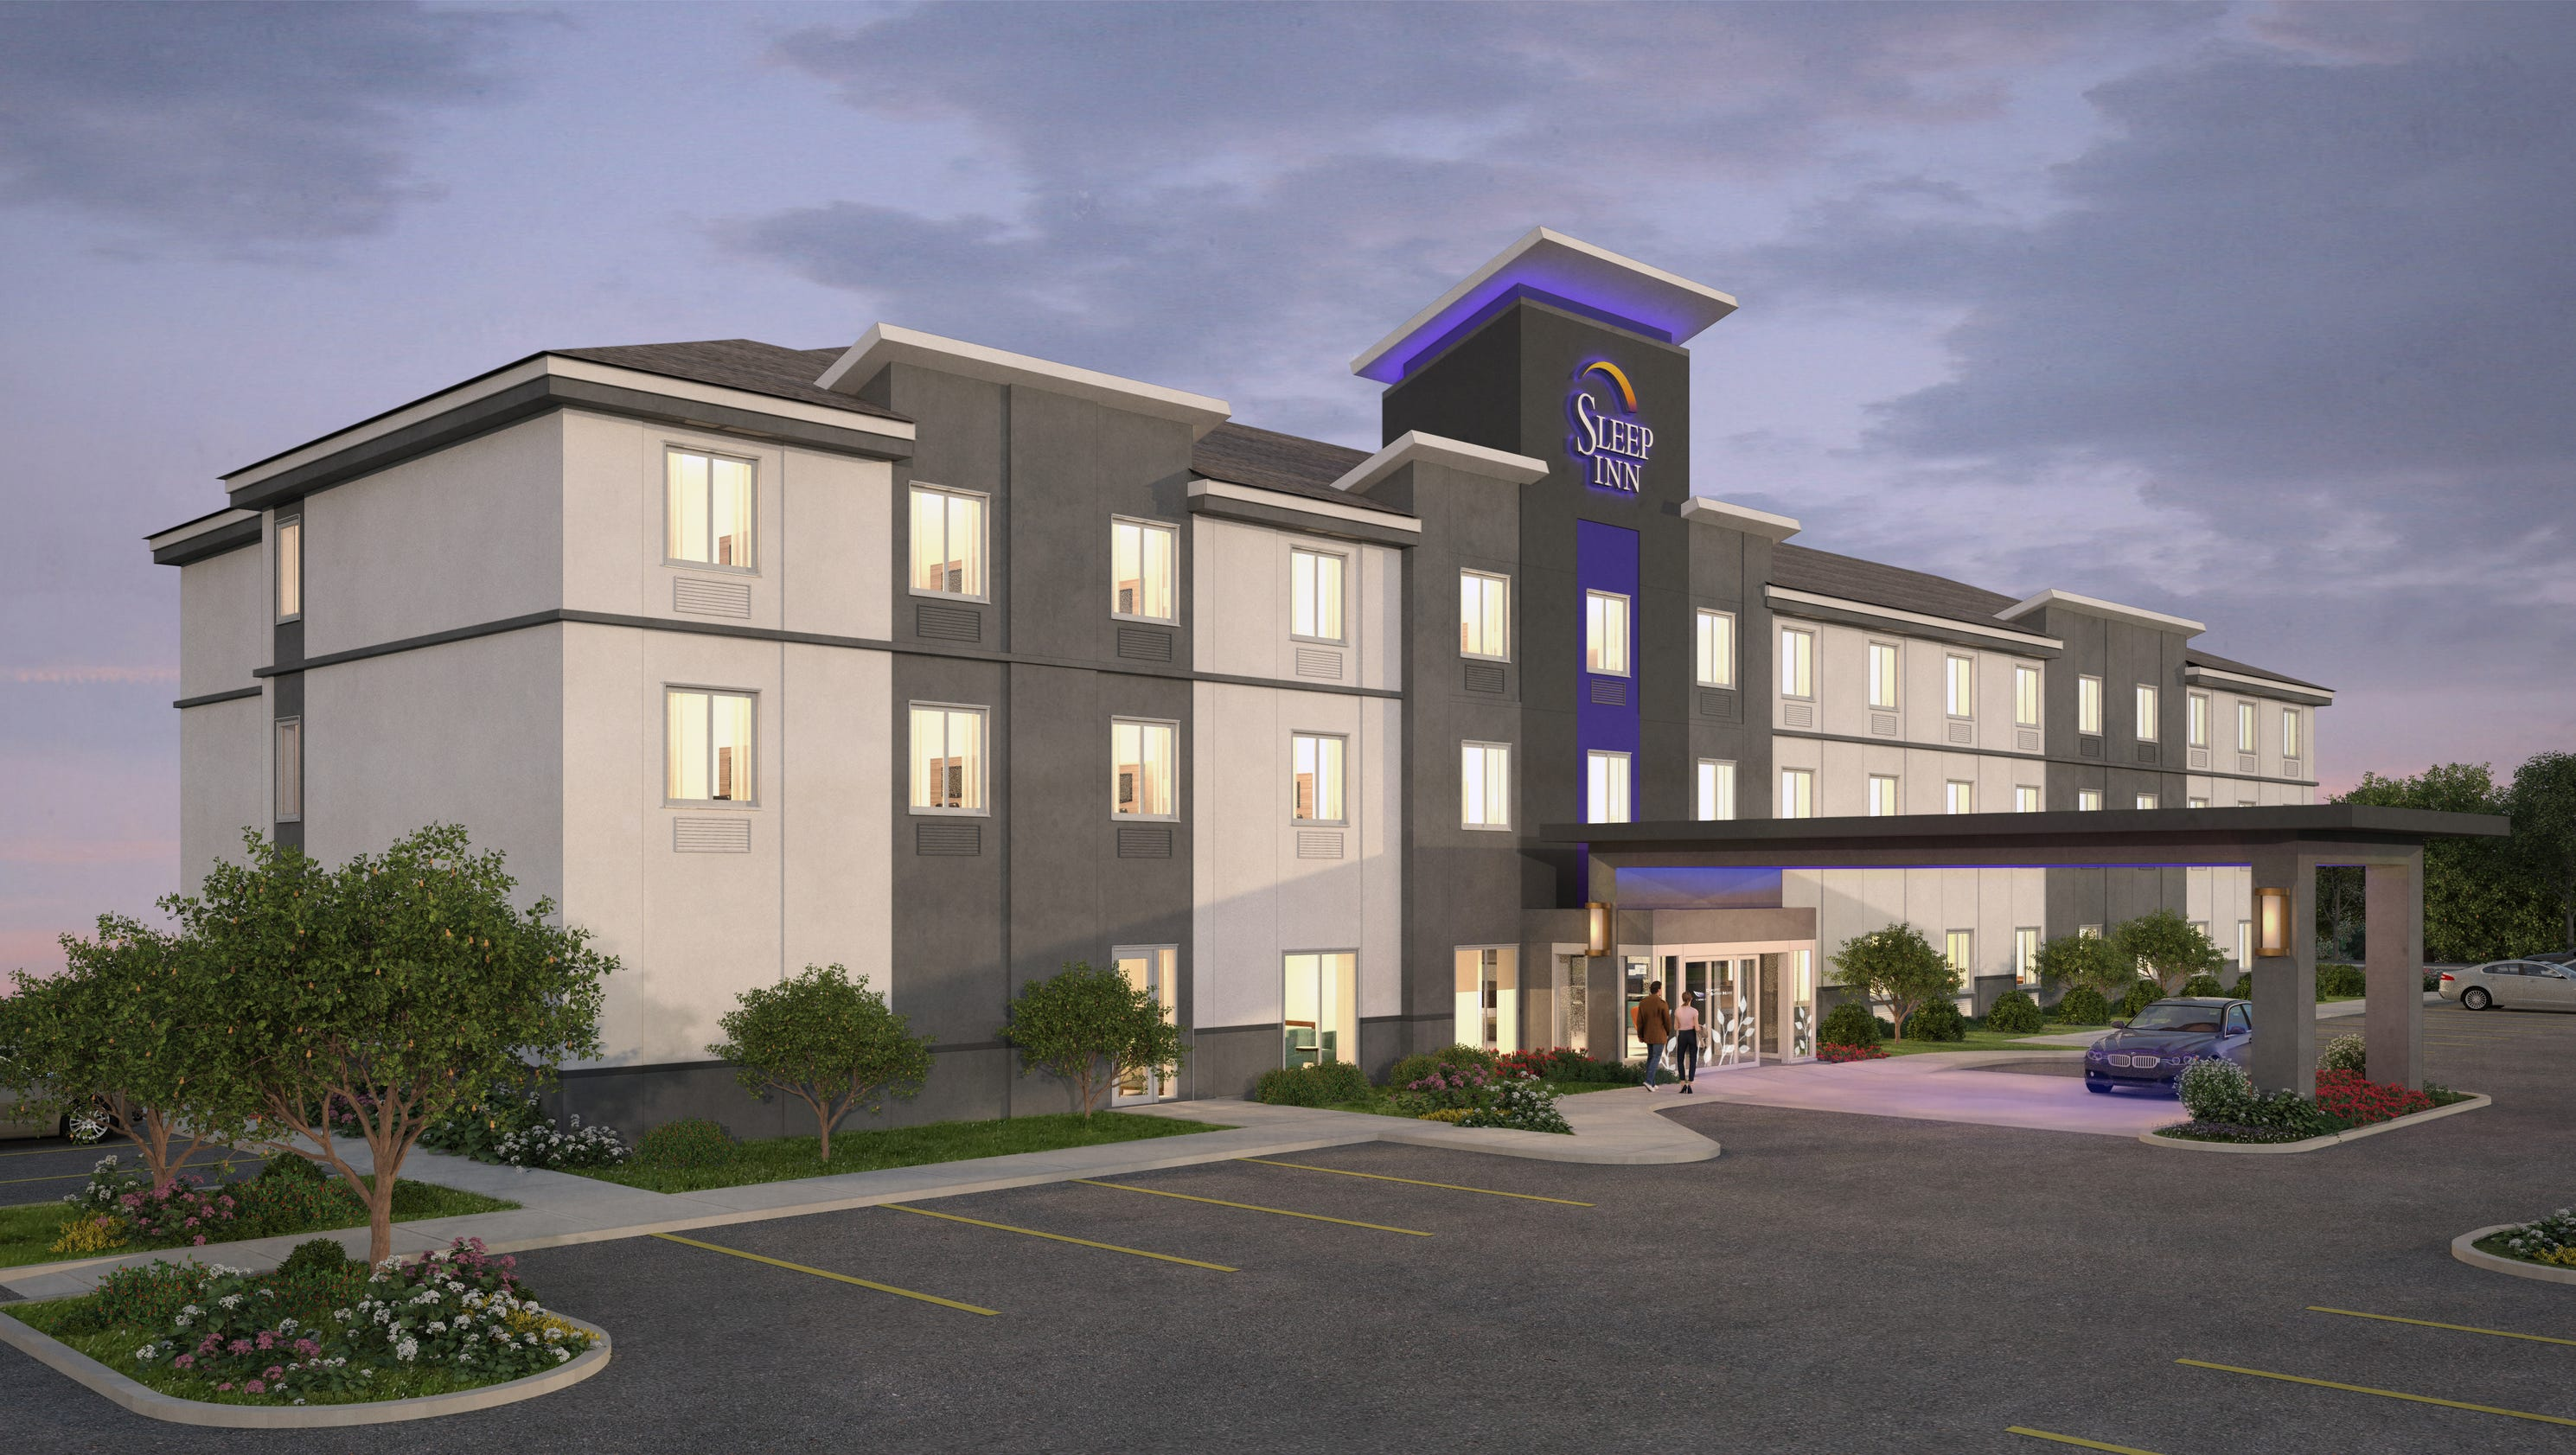 Midscale Brand Sleep Inn Gets A Modern Look